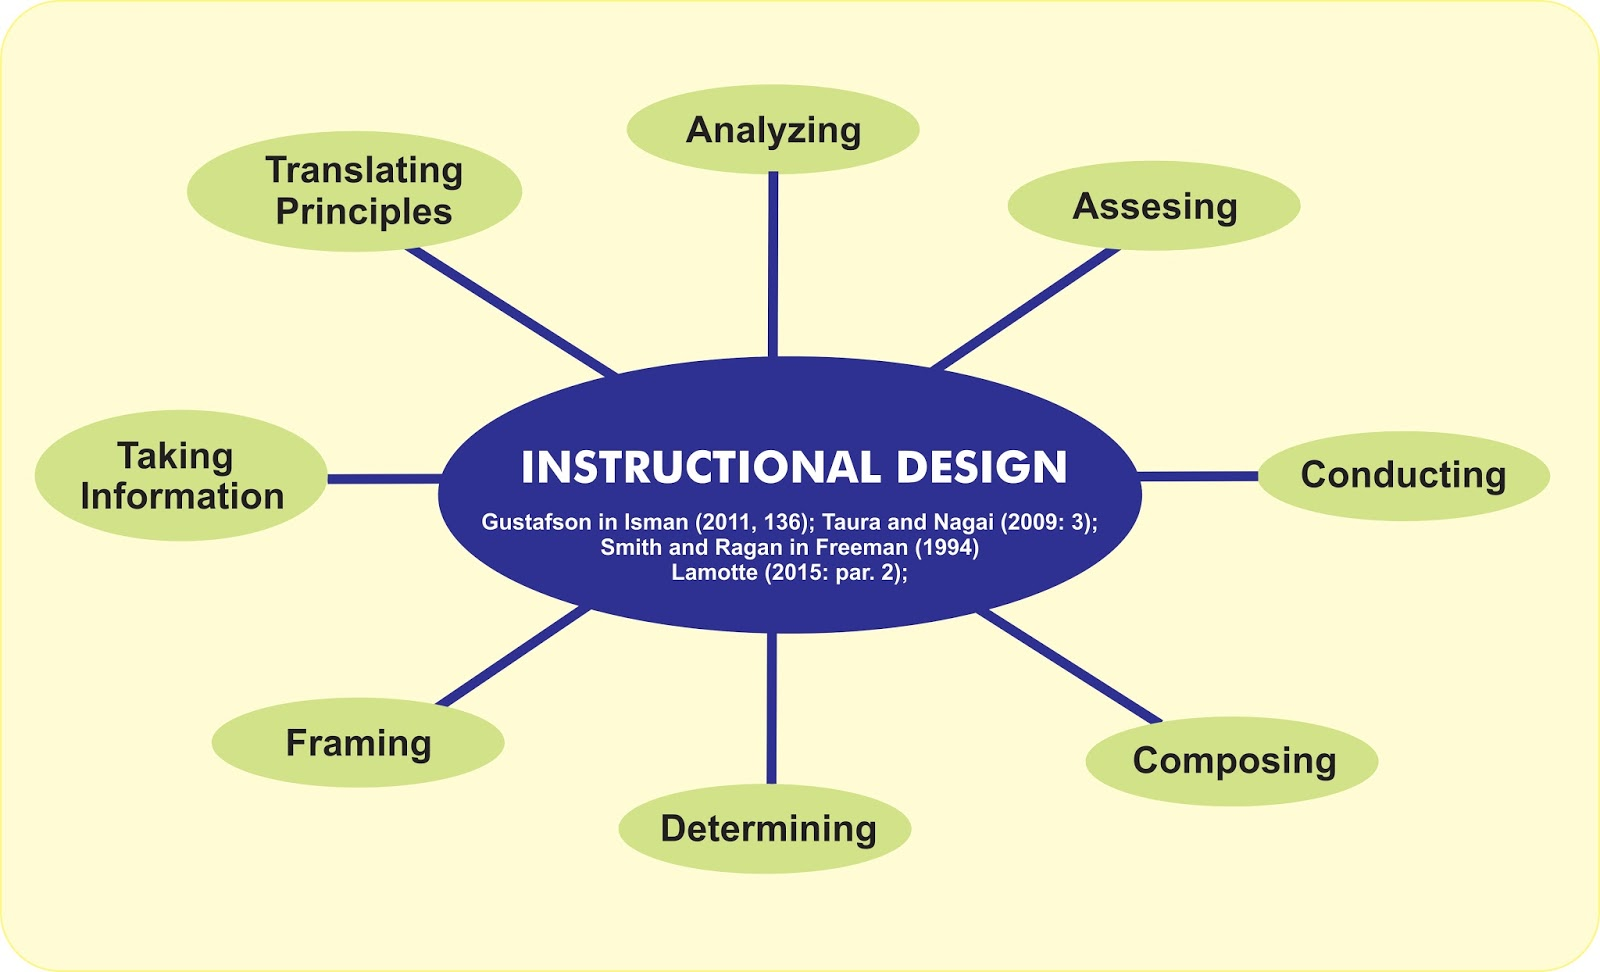 instructional designers perform not only designing training materials teaching manuals and student guides but also developing full course materials and the